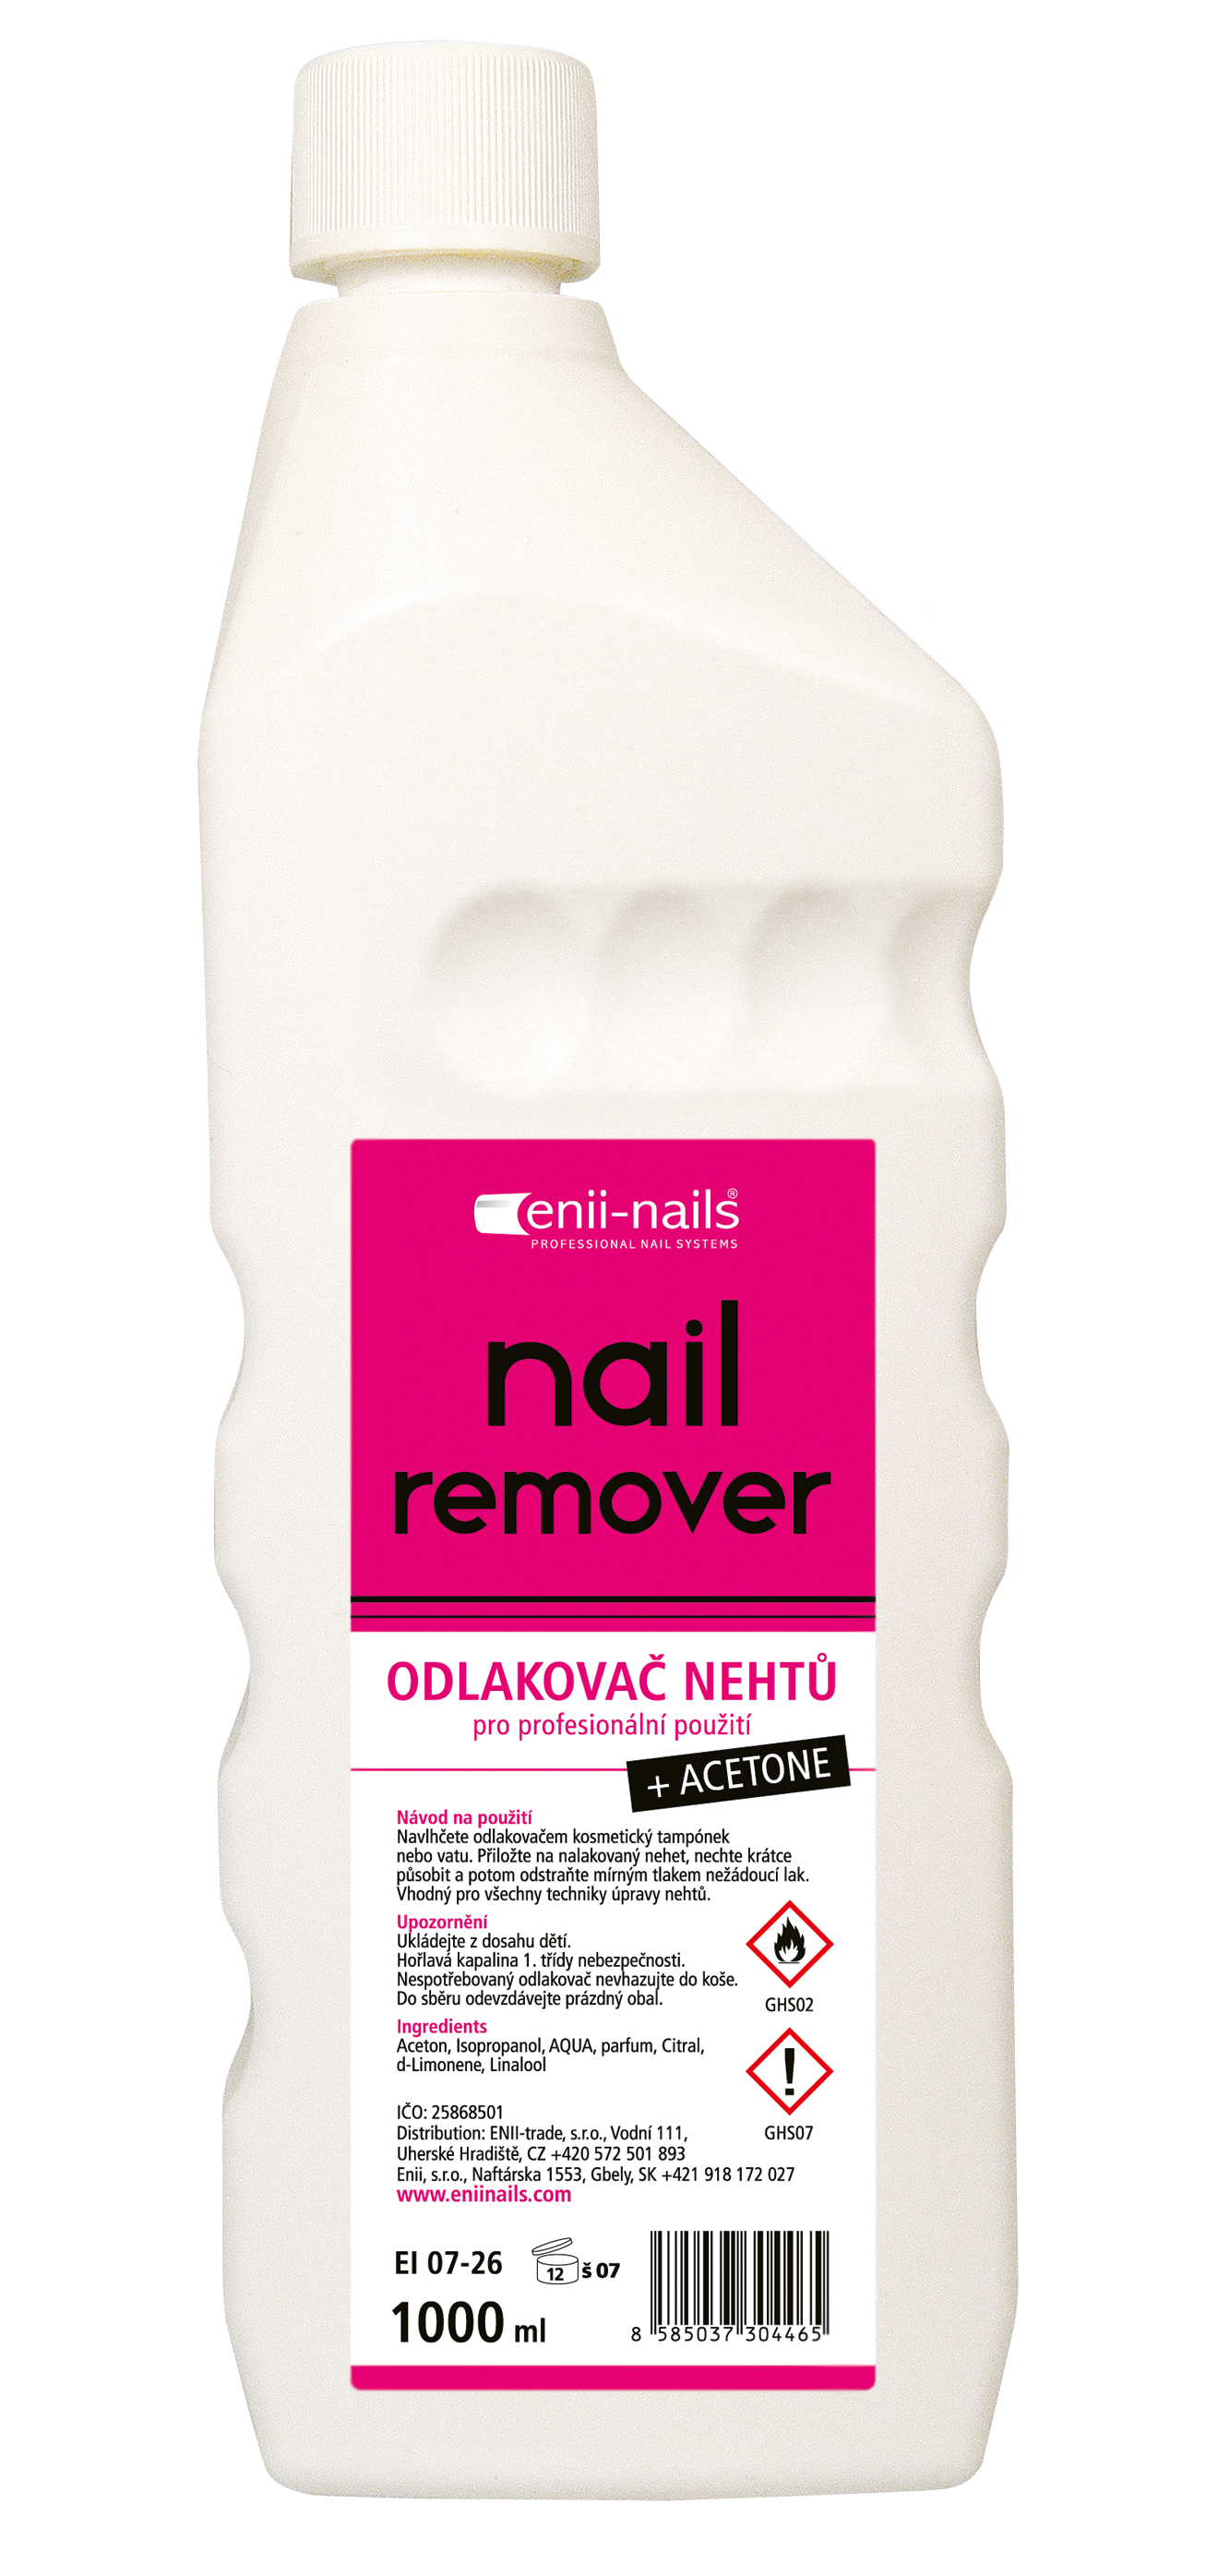 ENII-NAILS Acetonový odlakovač 1000 ml